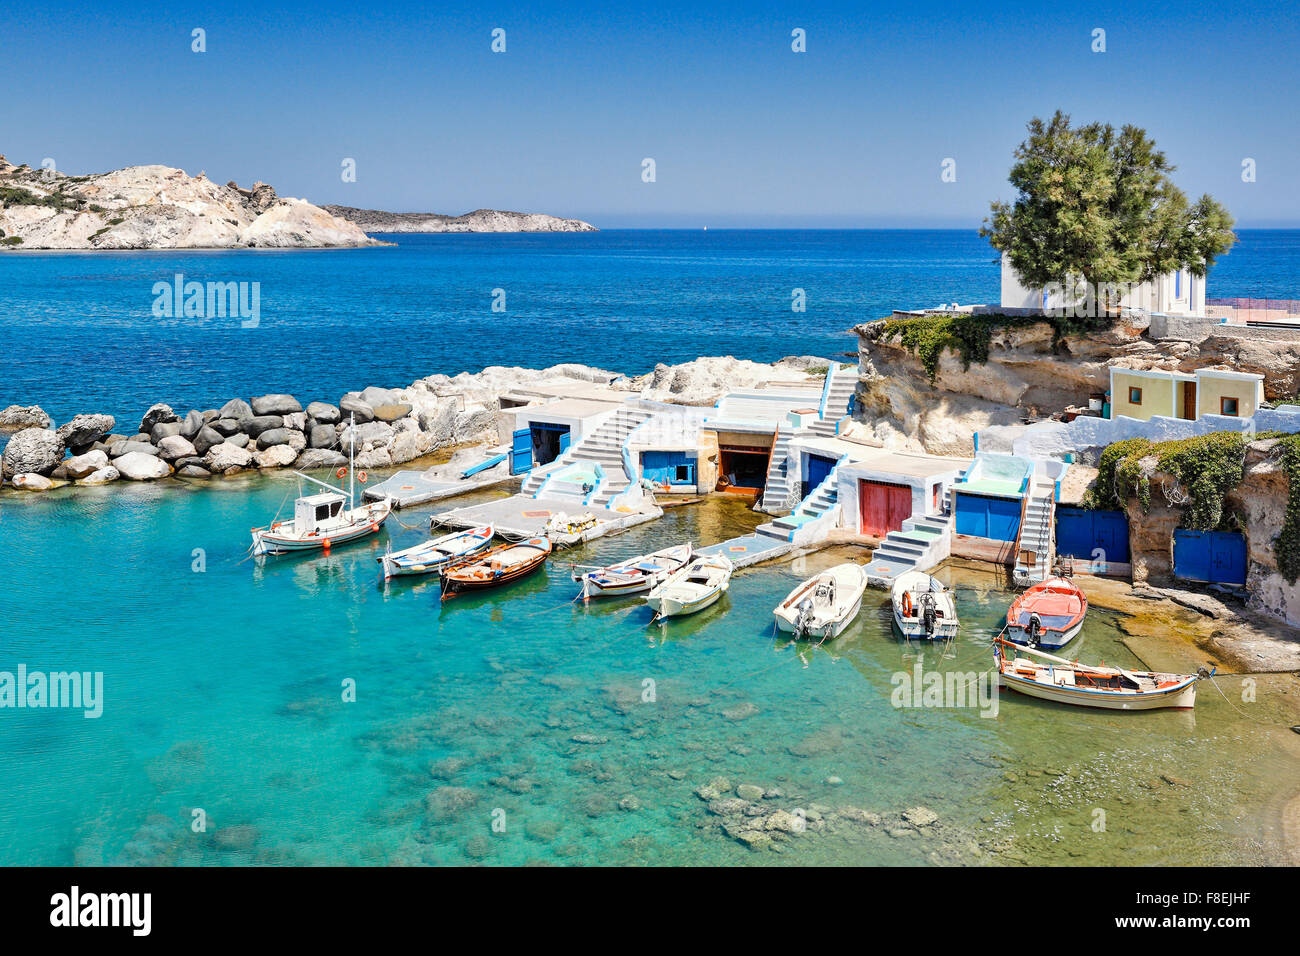 "Traditional fishermen houses with the impressive boat shelters, also known as ""syrmata"" in Mandrakia of Milos, Greece - Stock Image"